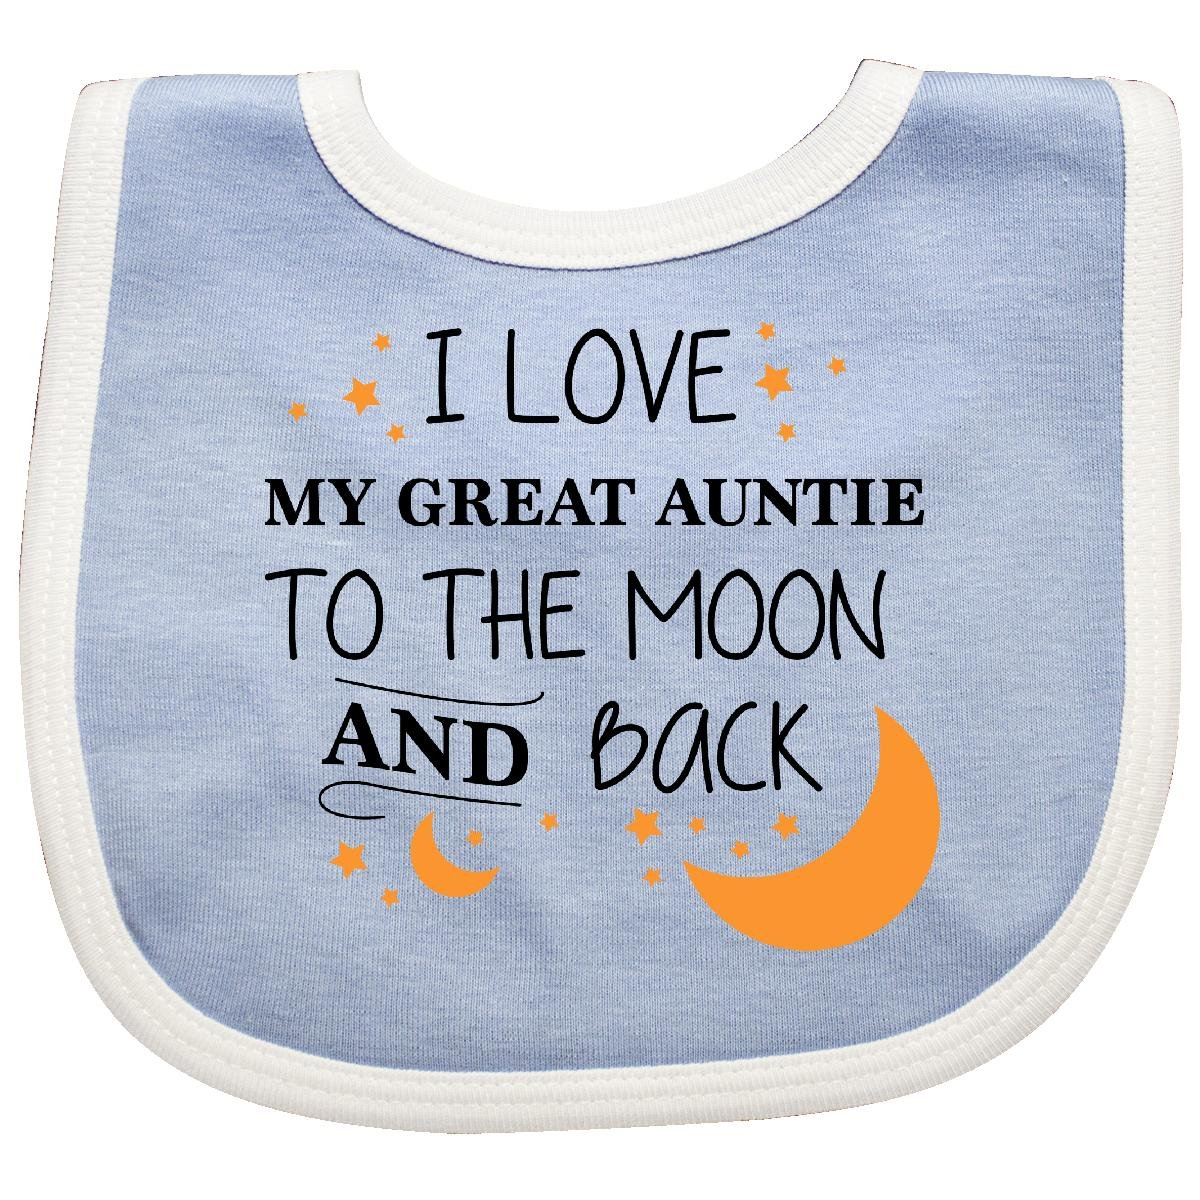 1c8bd83c2 Amazon.com: Inktastic - I Love My Great Auntie To The Moon and Baby Bib  Blue/White 2965b: Clothing